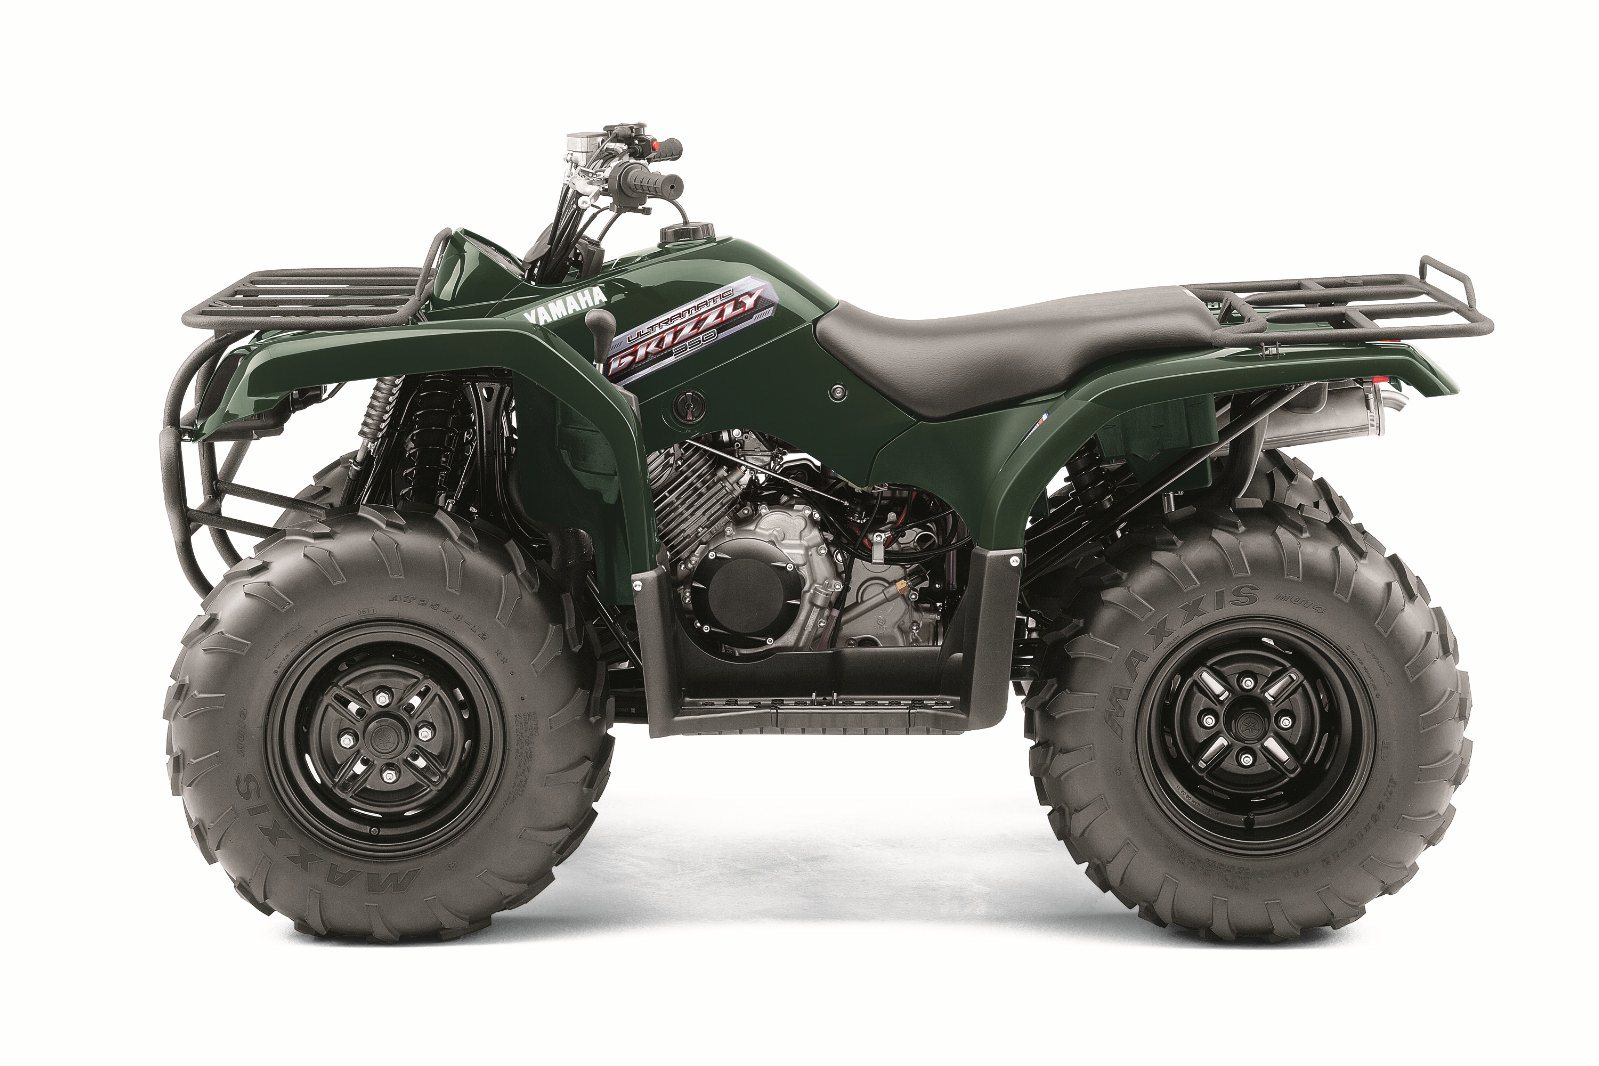 2012 YAMAHA Grizzly 350 Auto. 4x4 | Top Speed